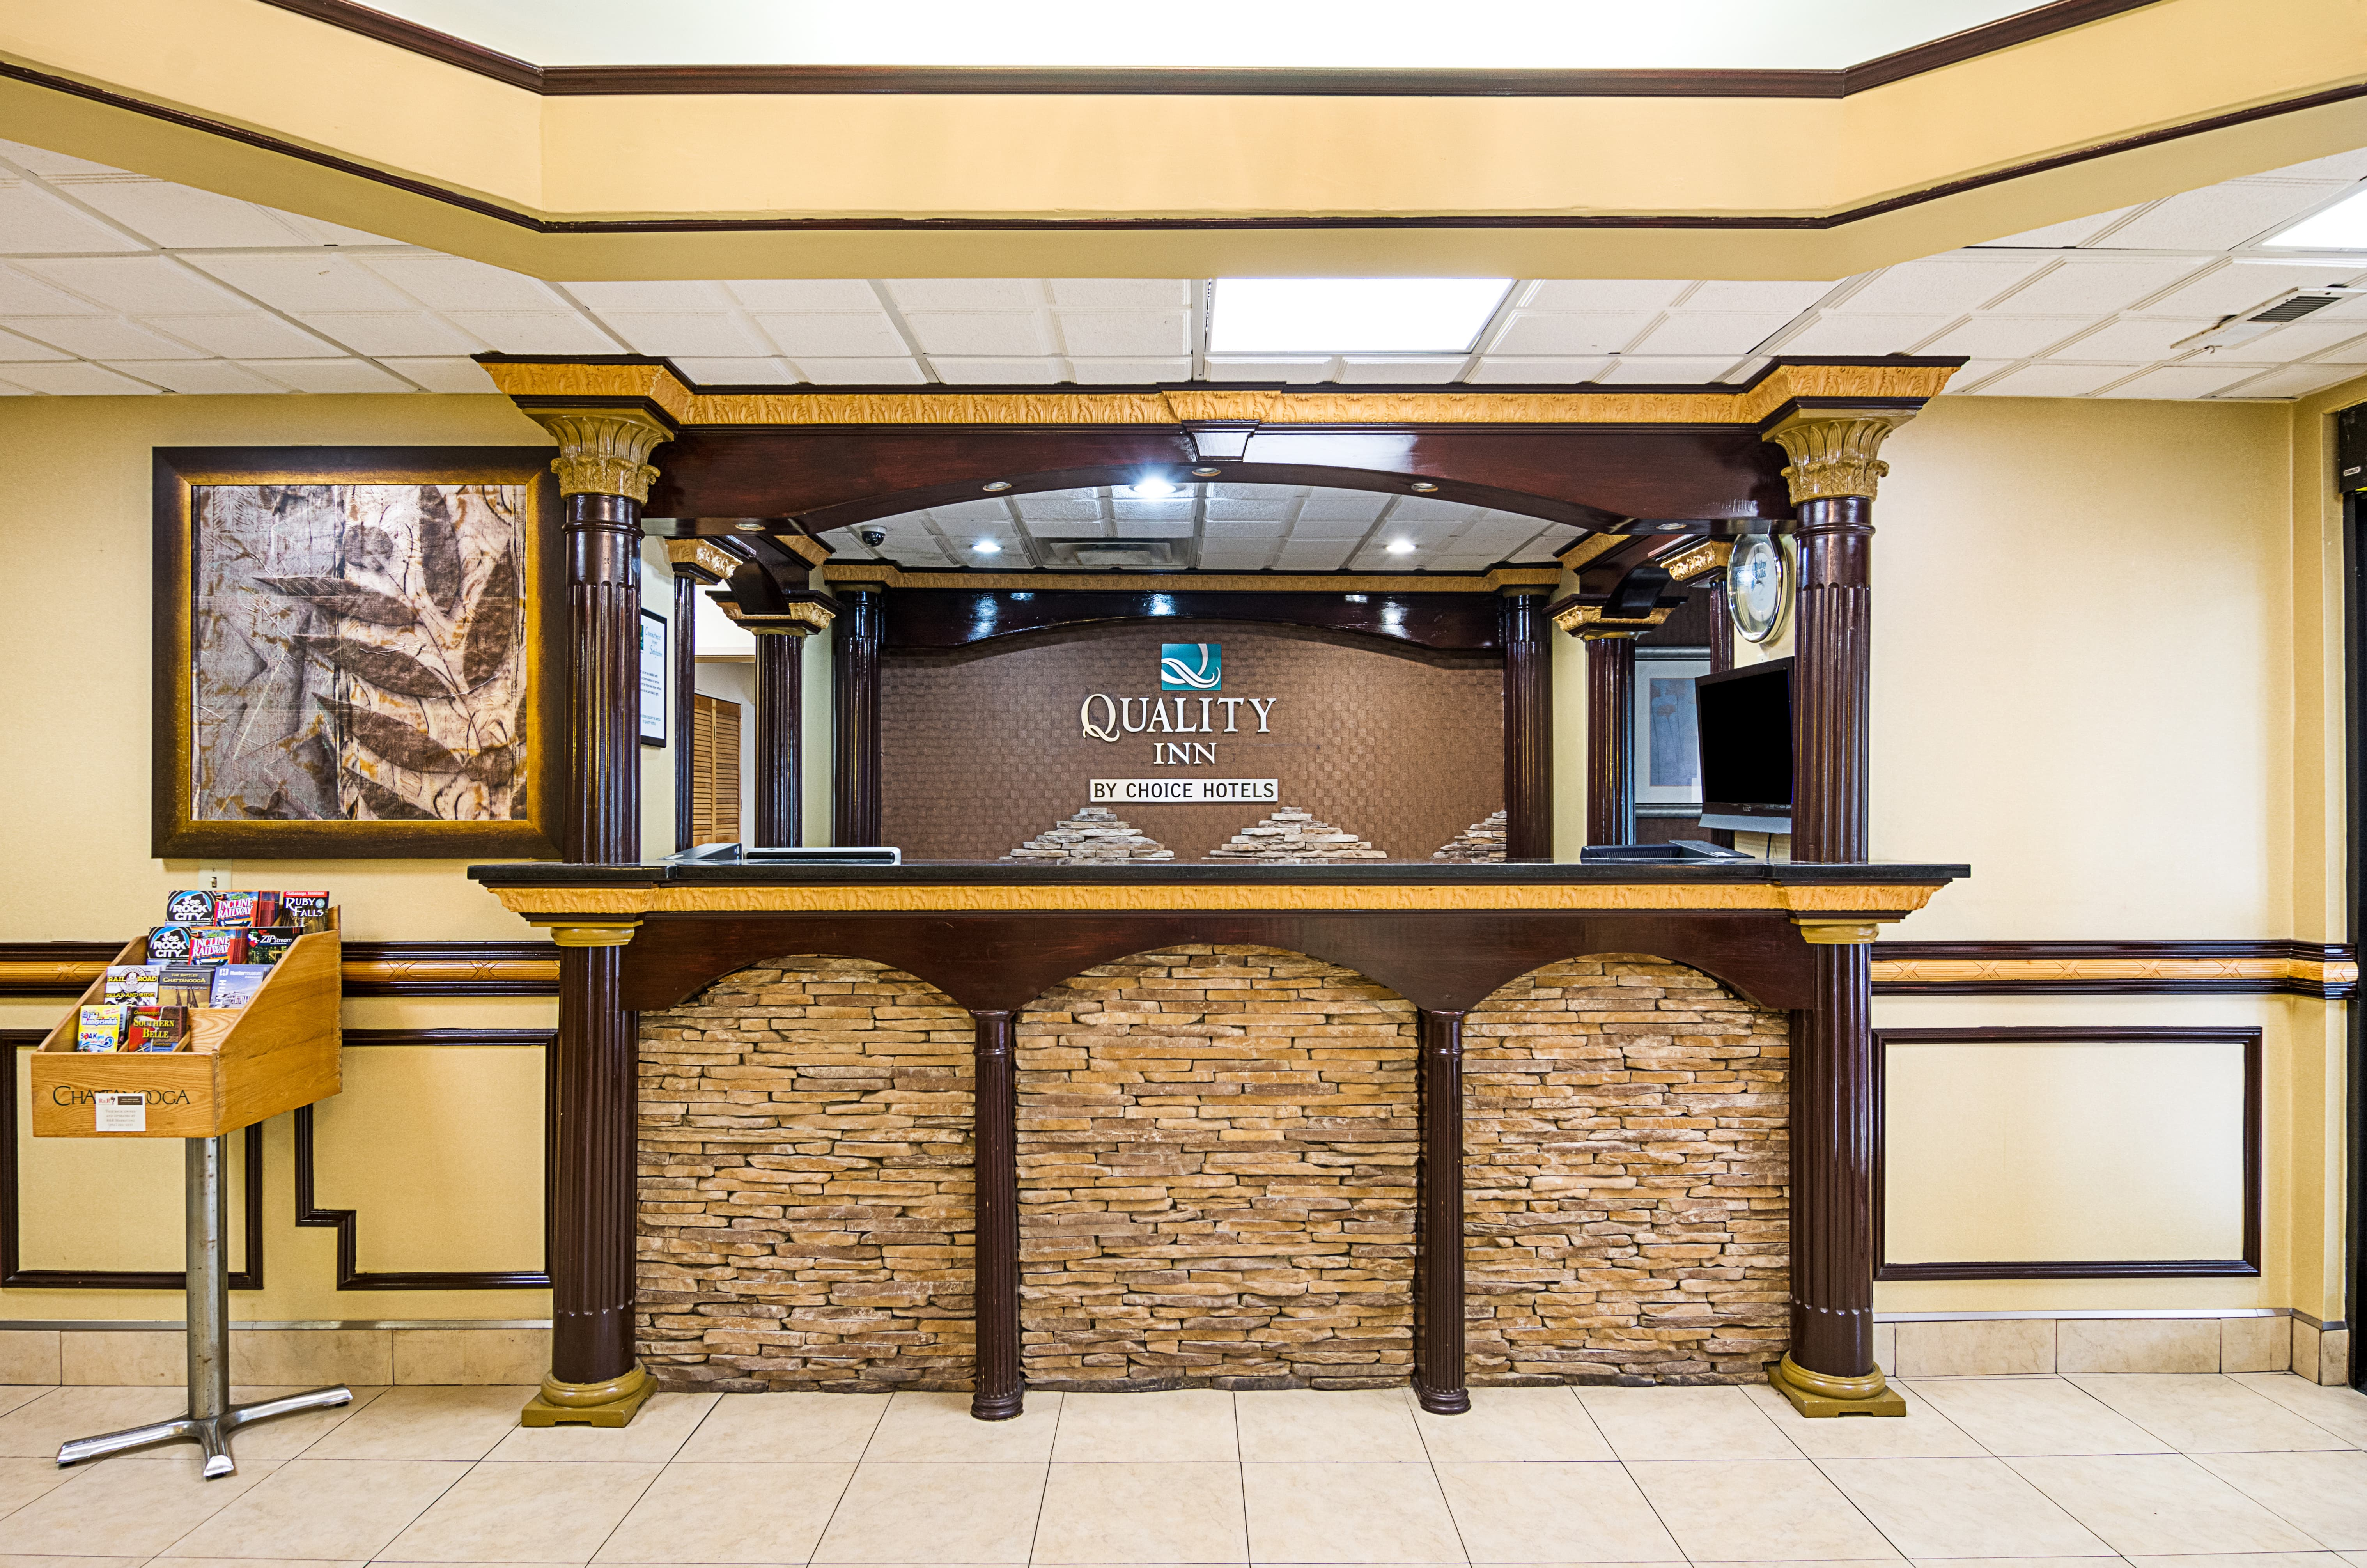 Quality Inn Suites In Chattanooga Tn Whitepages